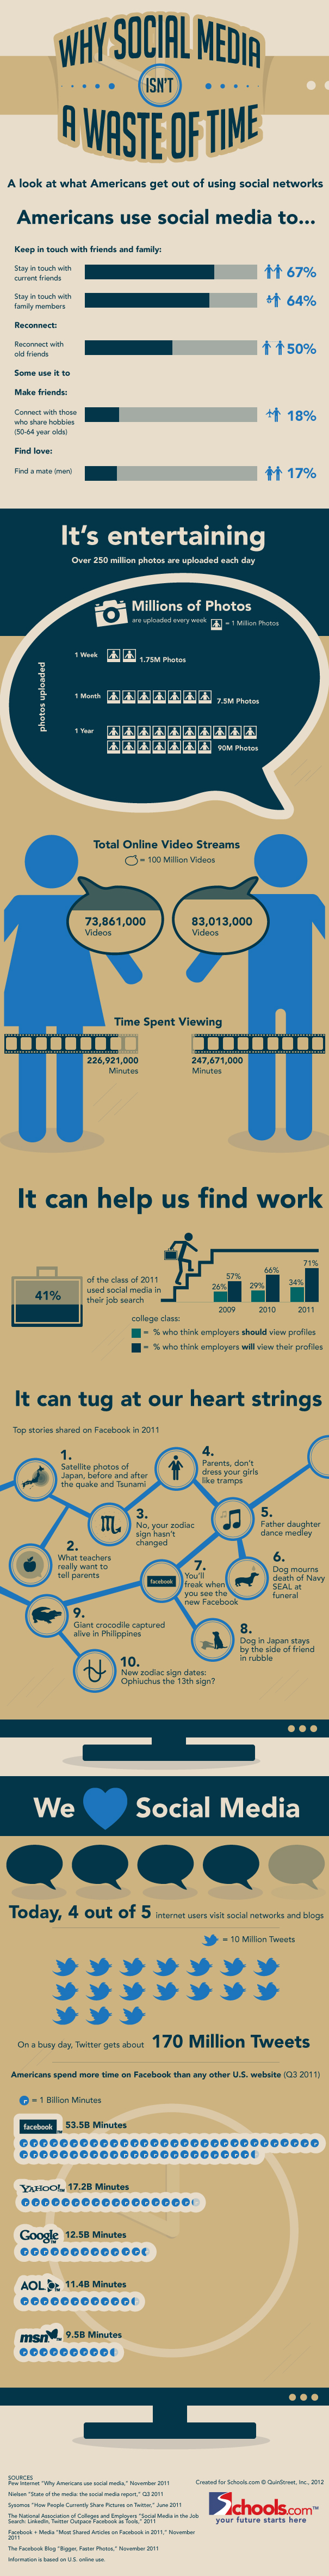 Why-Social-Media-Isn't-A-Waste-Of-Time-infographic